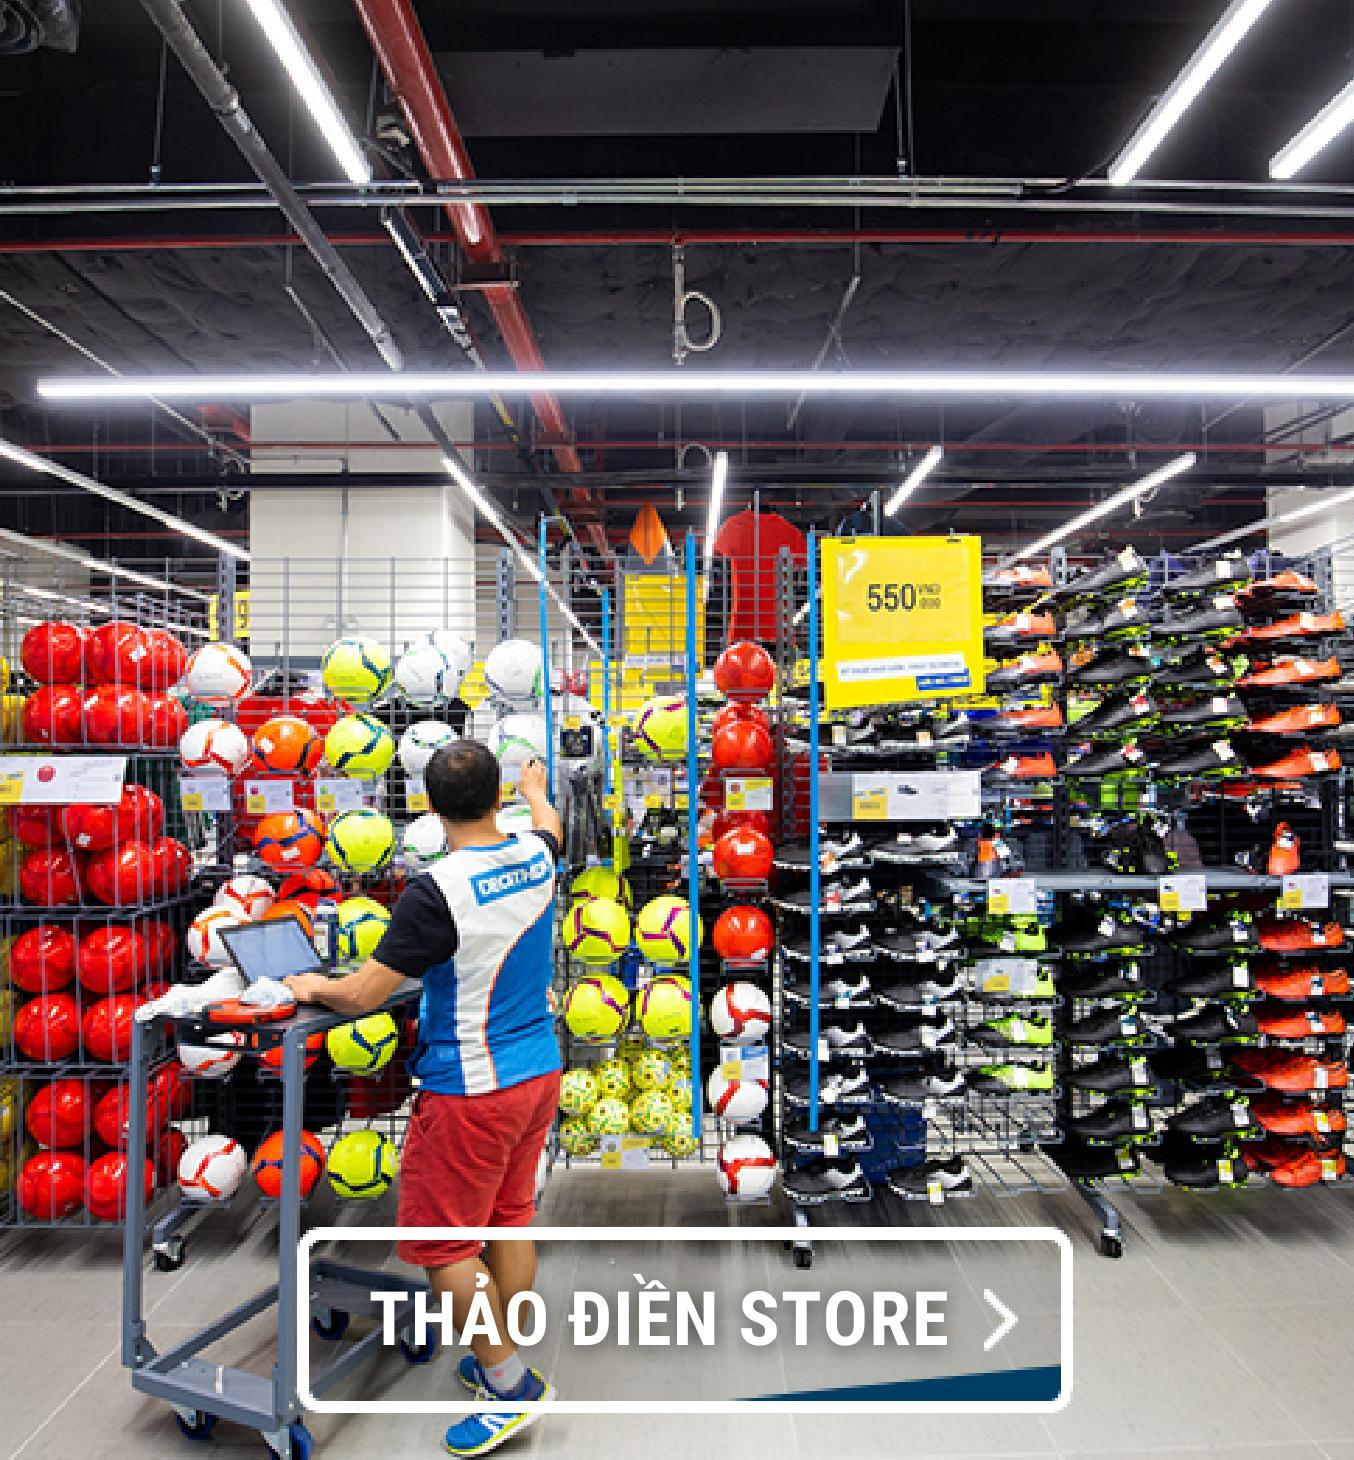 Click&collect, click and collect, partnership, delivery partner, thaodienstore, decathlon store